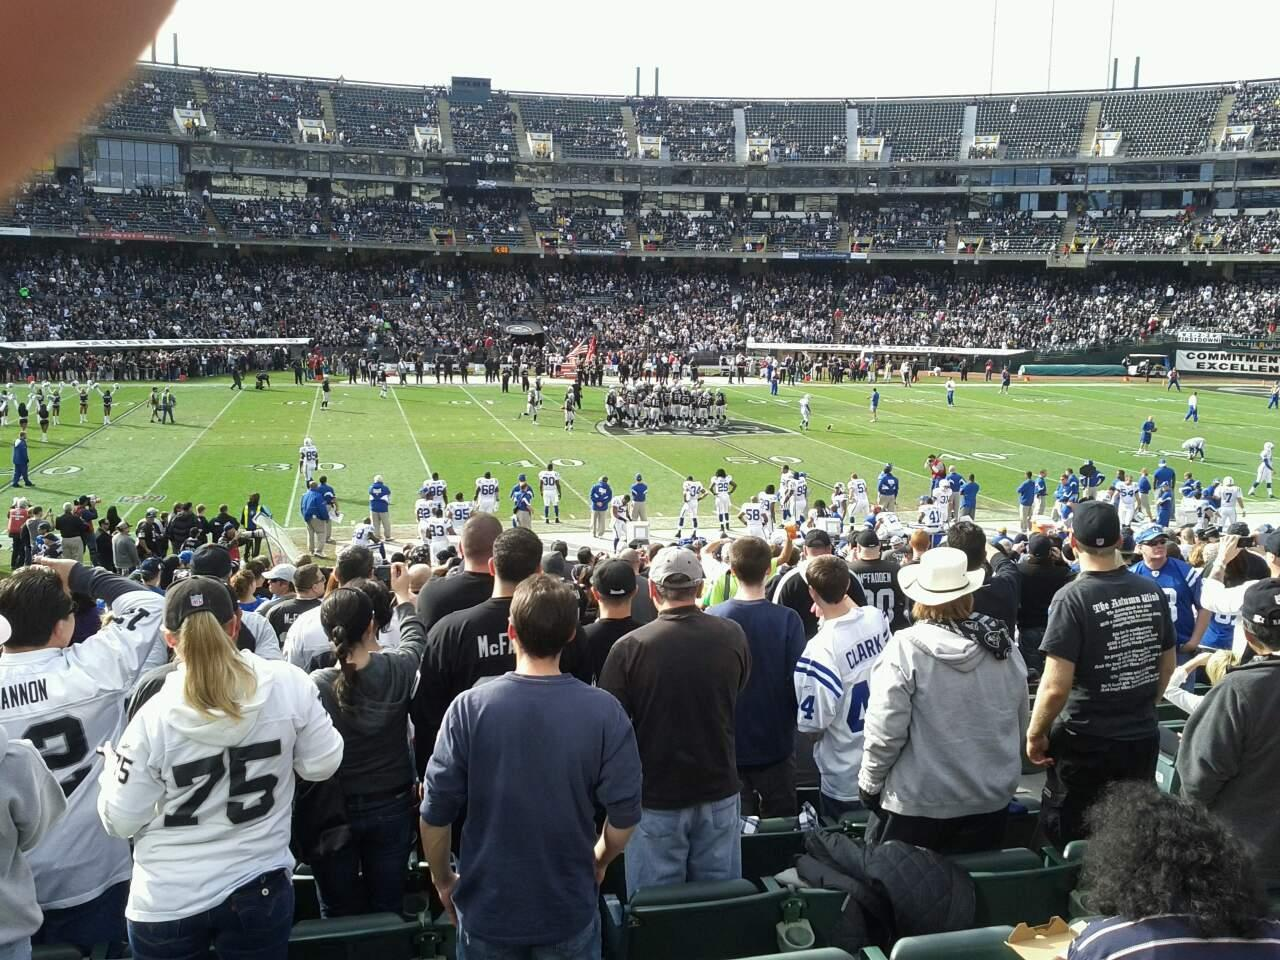 Oakland Alameda Coliseum Section 143 Row 23 Seat 5